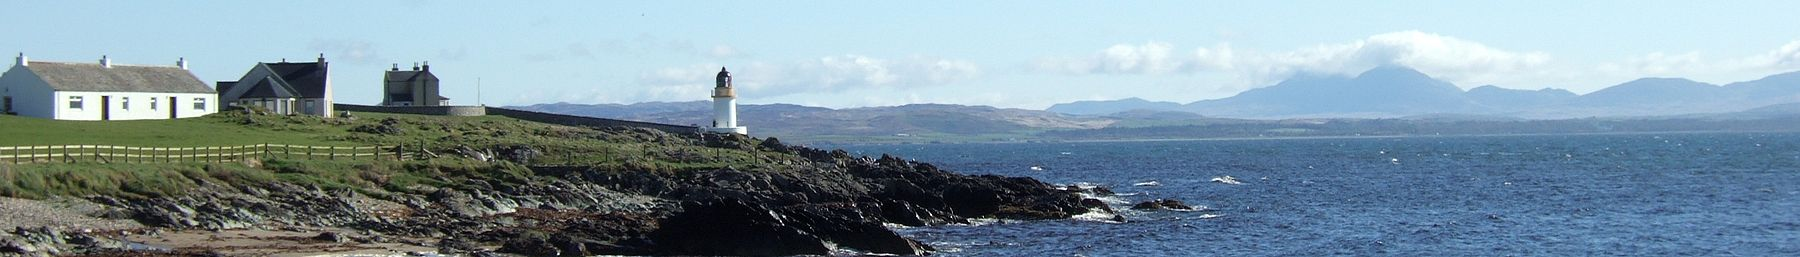 "Loch Indaal from Port Charlotte looking across Islay to the ""paps"" of Jura."